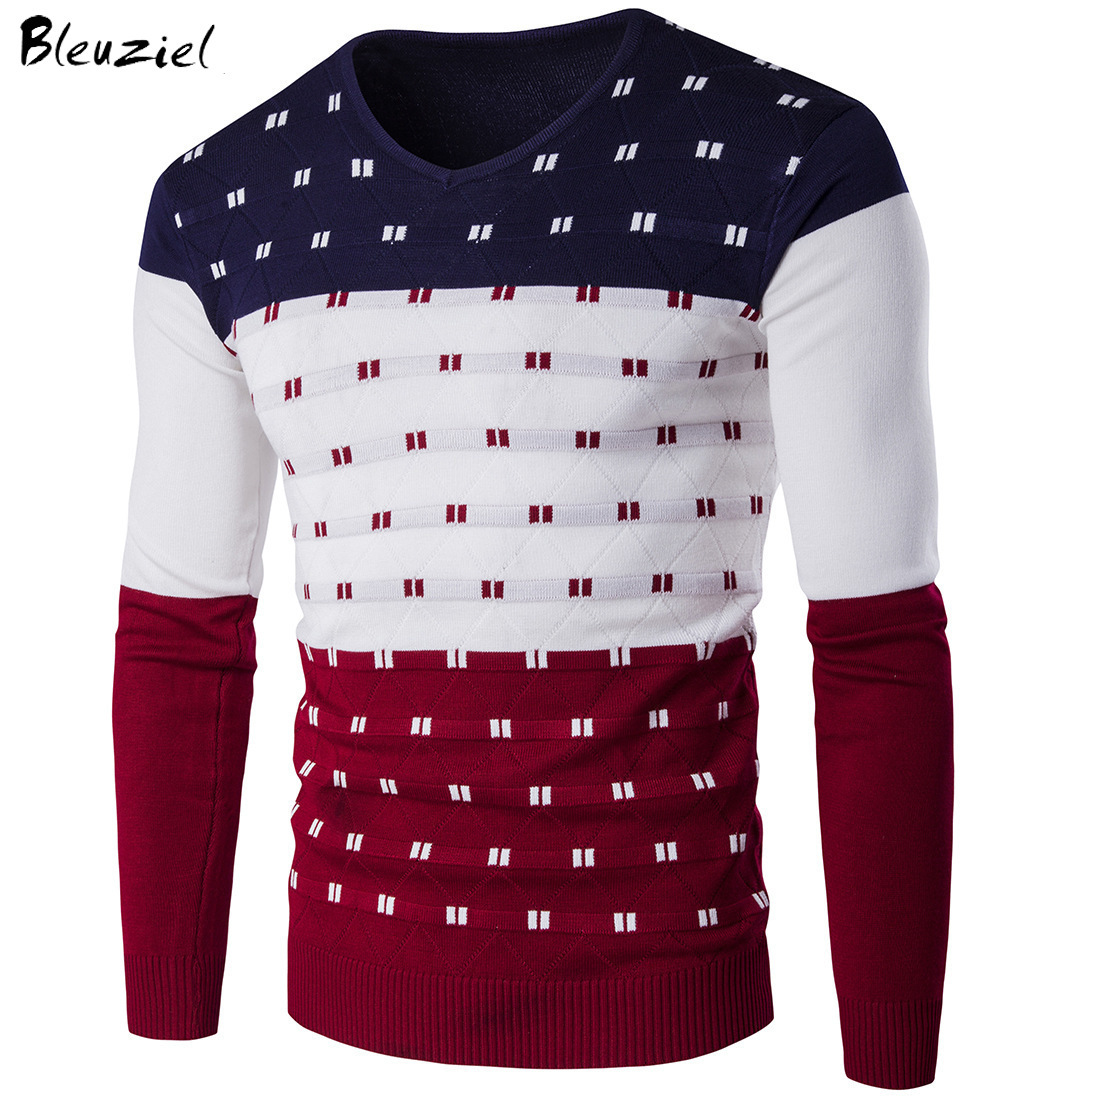 Bleuziel 5 Colors Striped Sweater Men Warm Long Sleeve V Neck Winter Clothes For Male Fashion Slim Fit Print Pullover Sweater